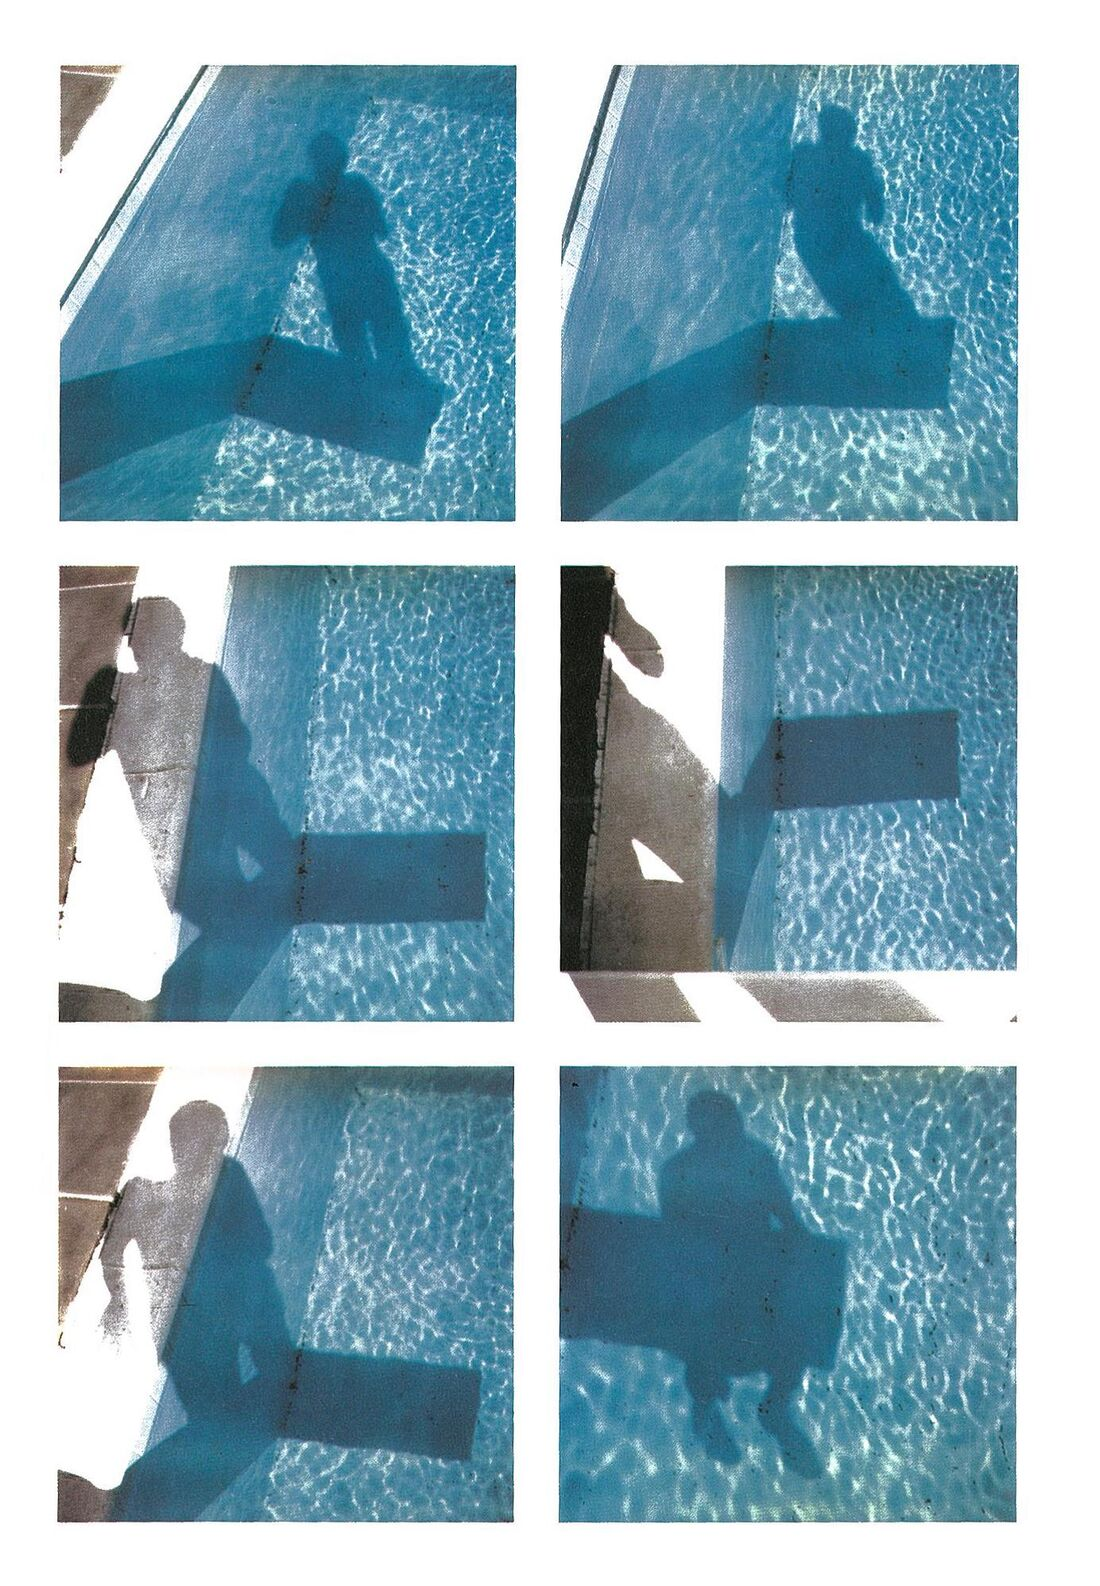 David Hockney Polaroid photographs depicting shadows in a pool from the special edition Paper Pools book, which accompanies the print